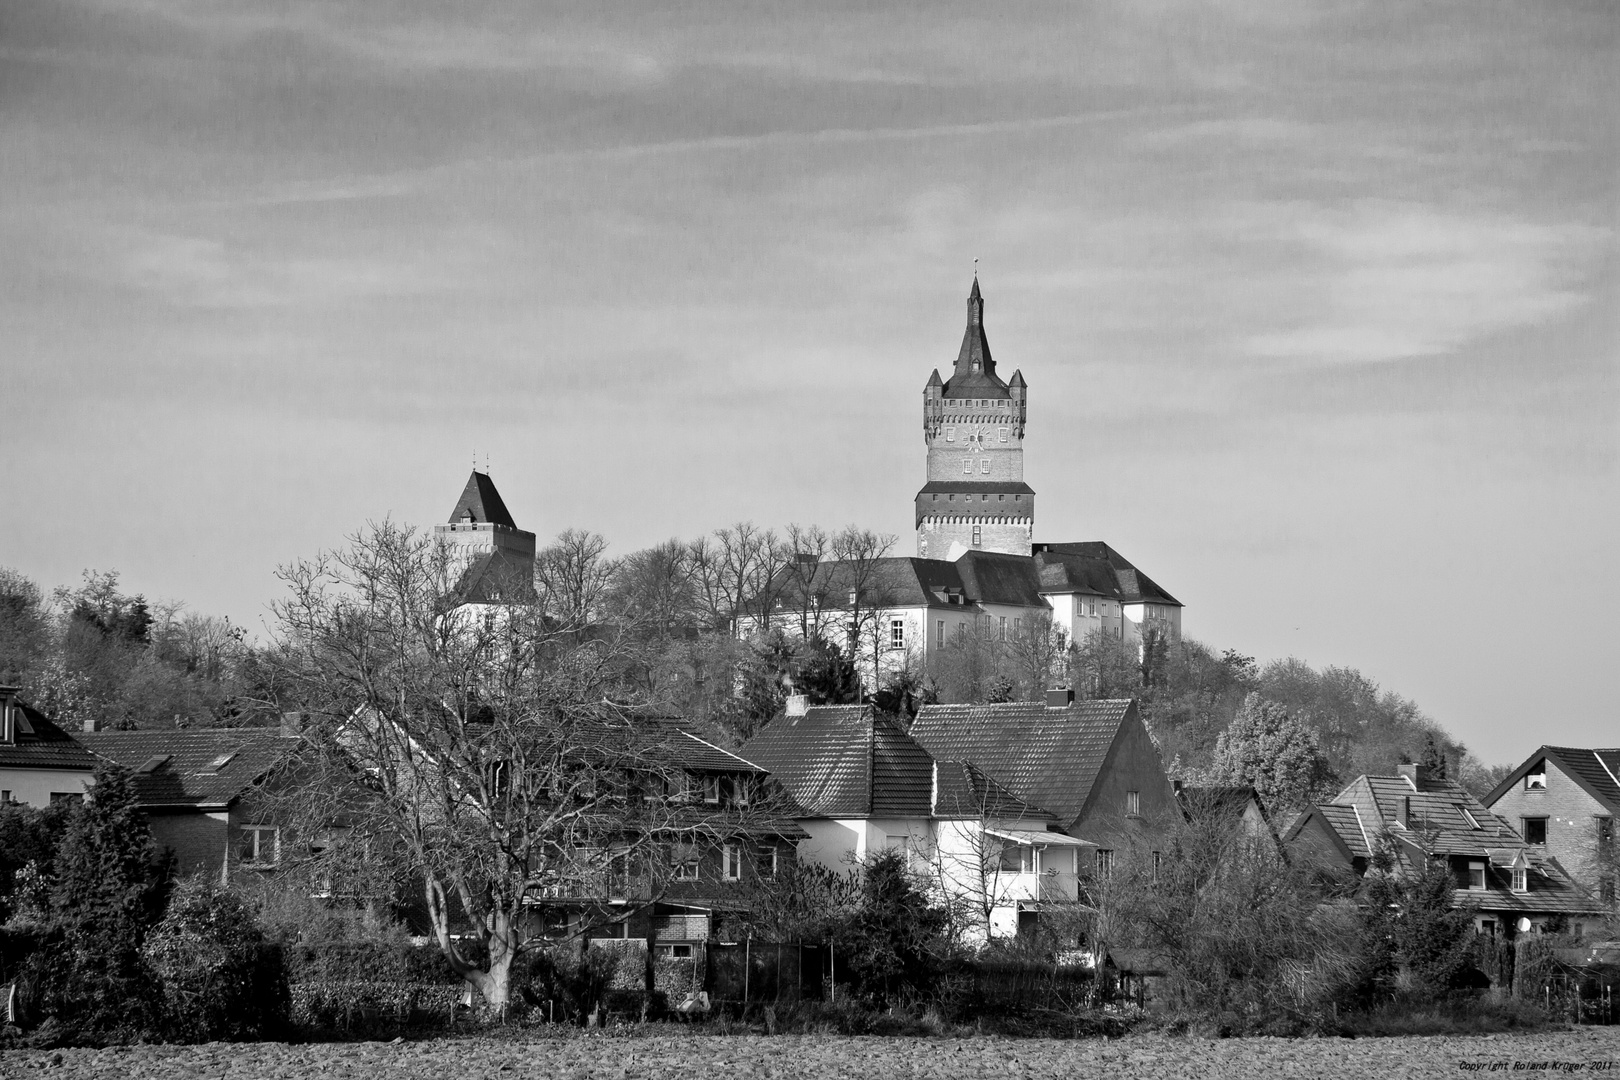 Schwanenburg in Kleve